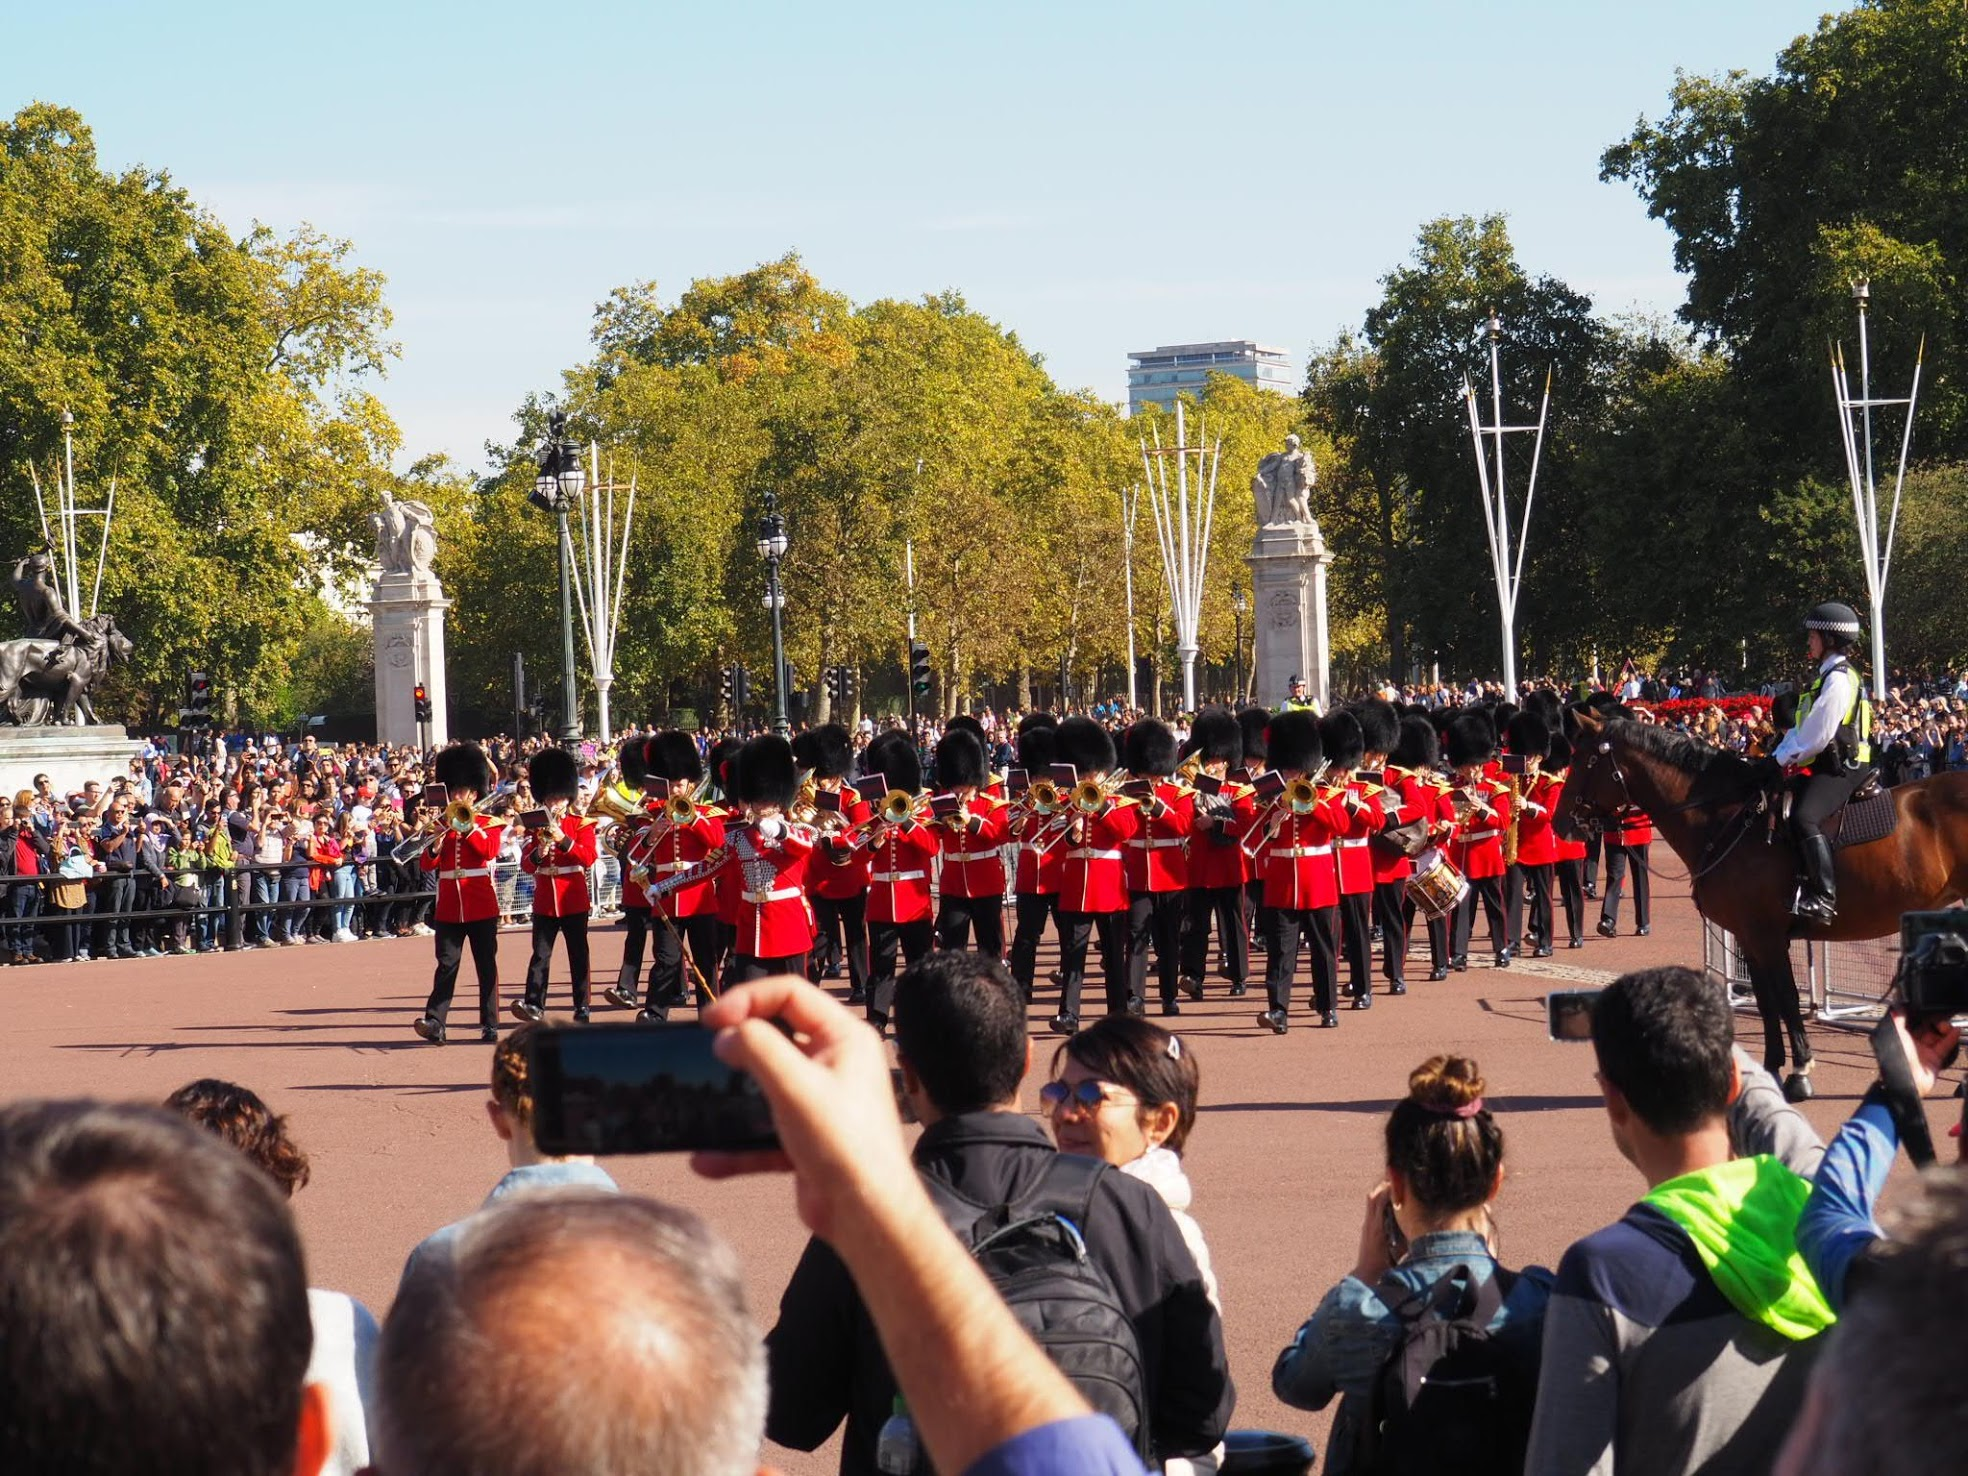 Buckingham Palace Guard Entering